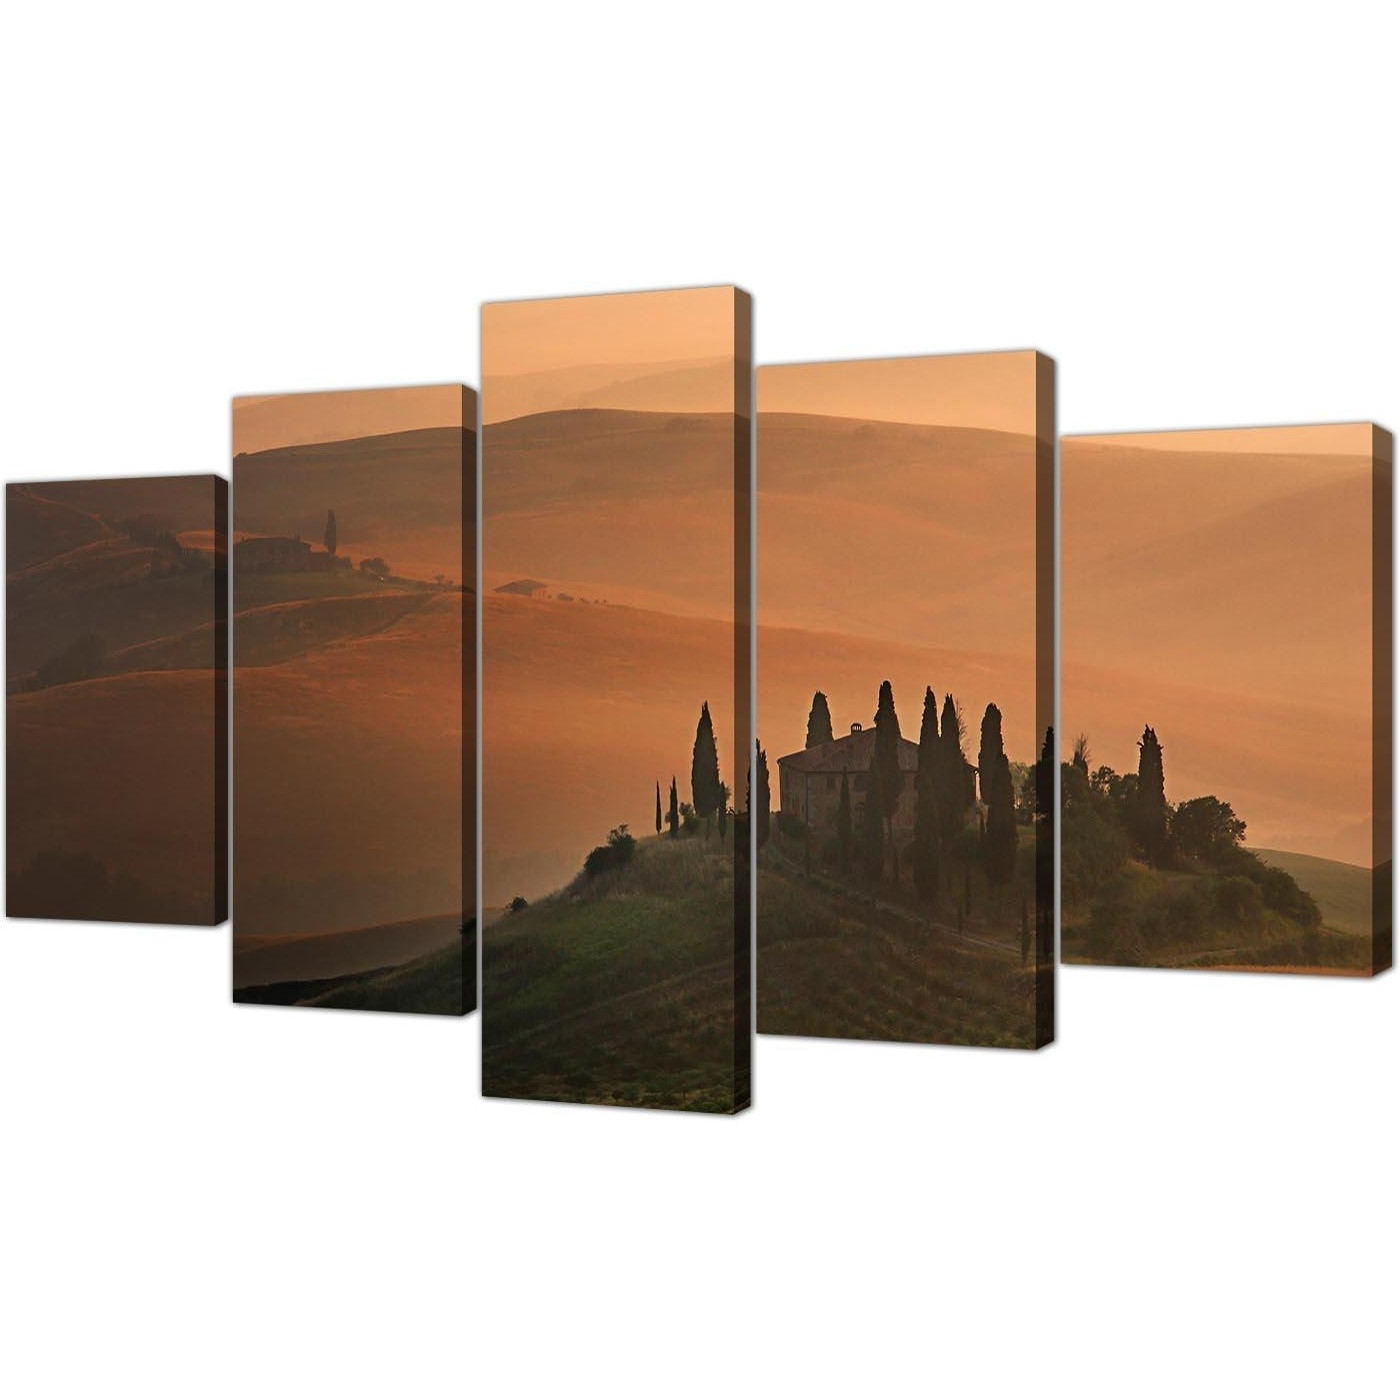 Extra Large Tuscany Vineyard – Italy Canvas Prints 5 Piece In Brown Inside Widely Used Italy Canvas Wall Art (View 6 of 15)